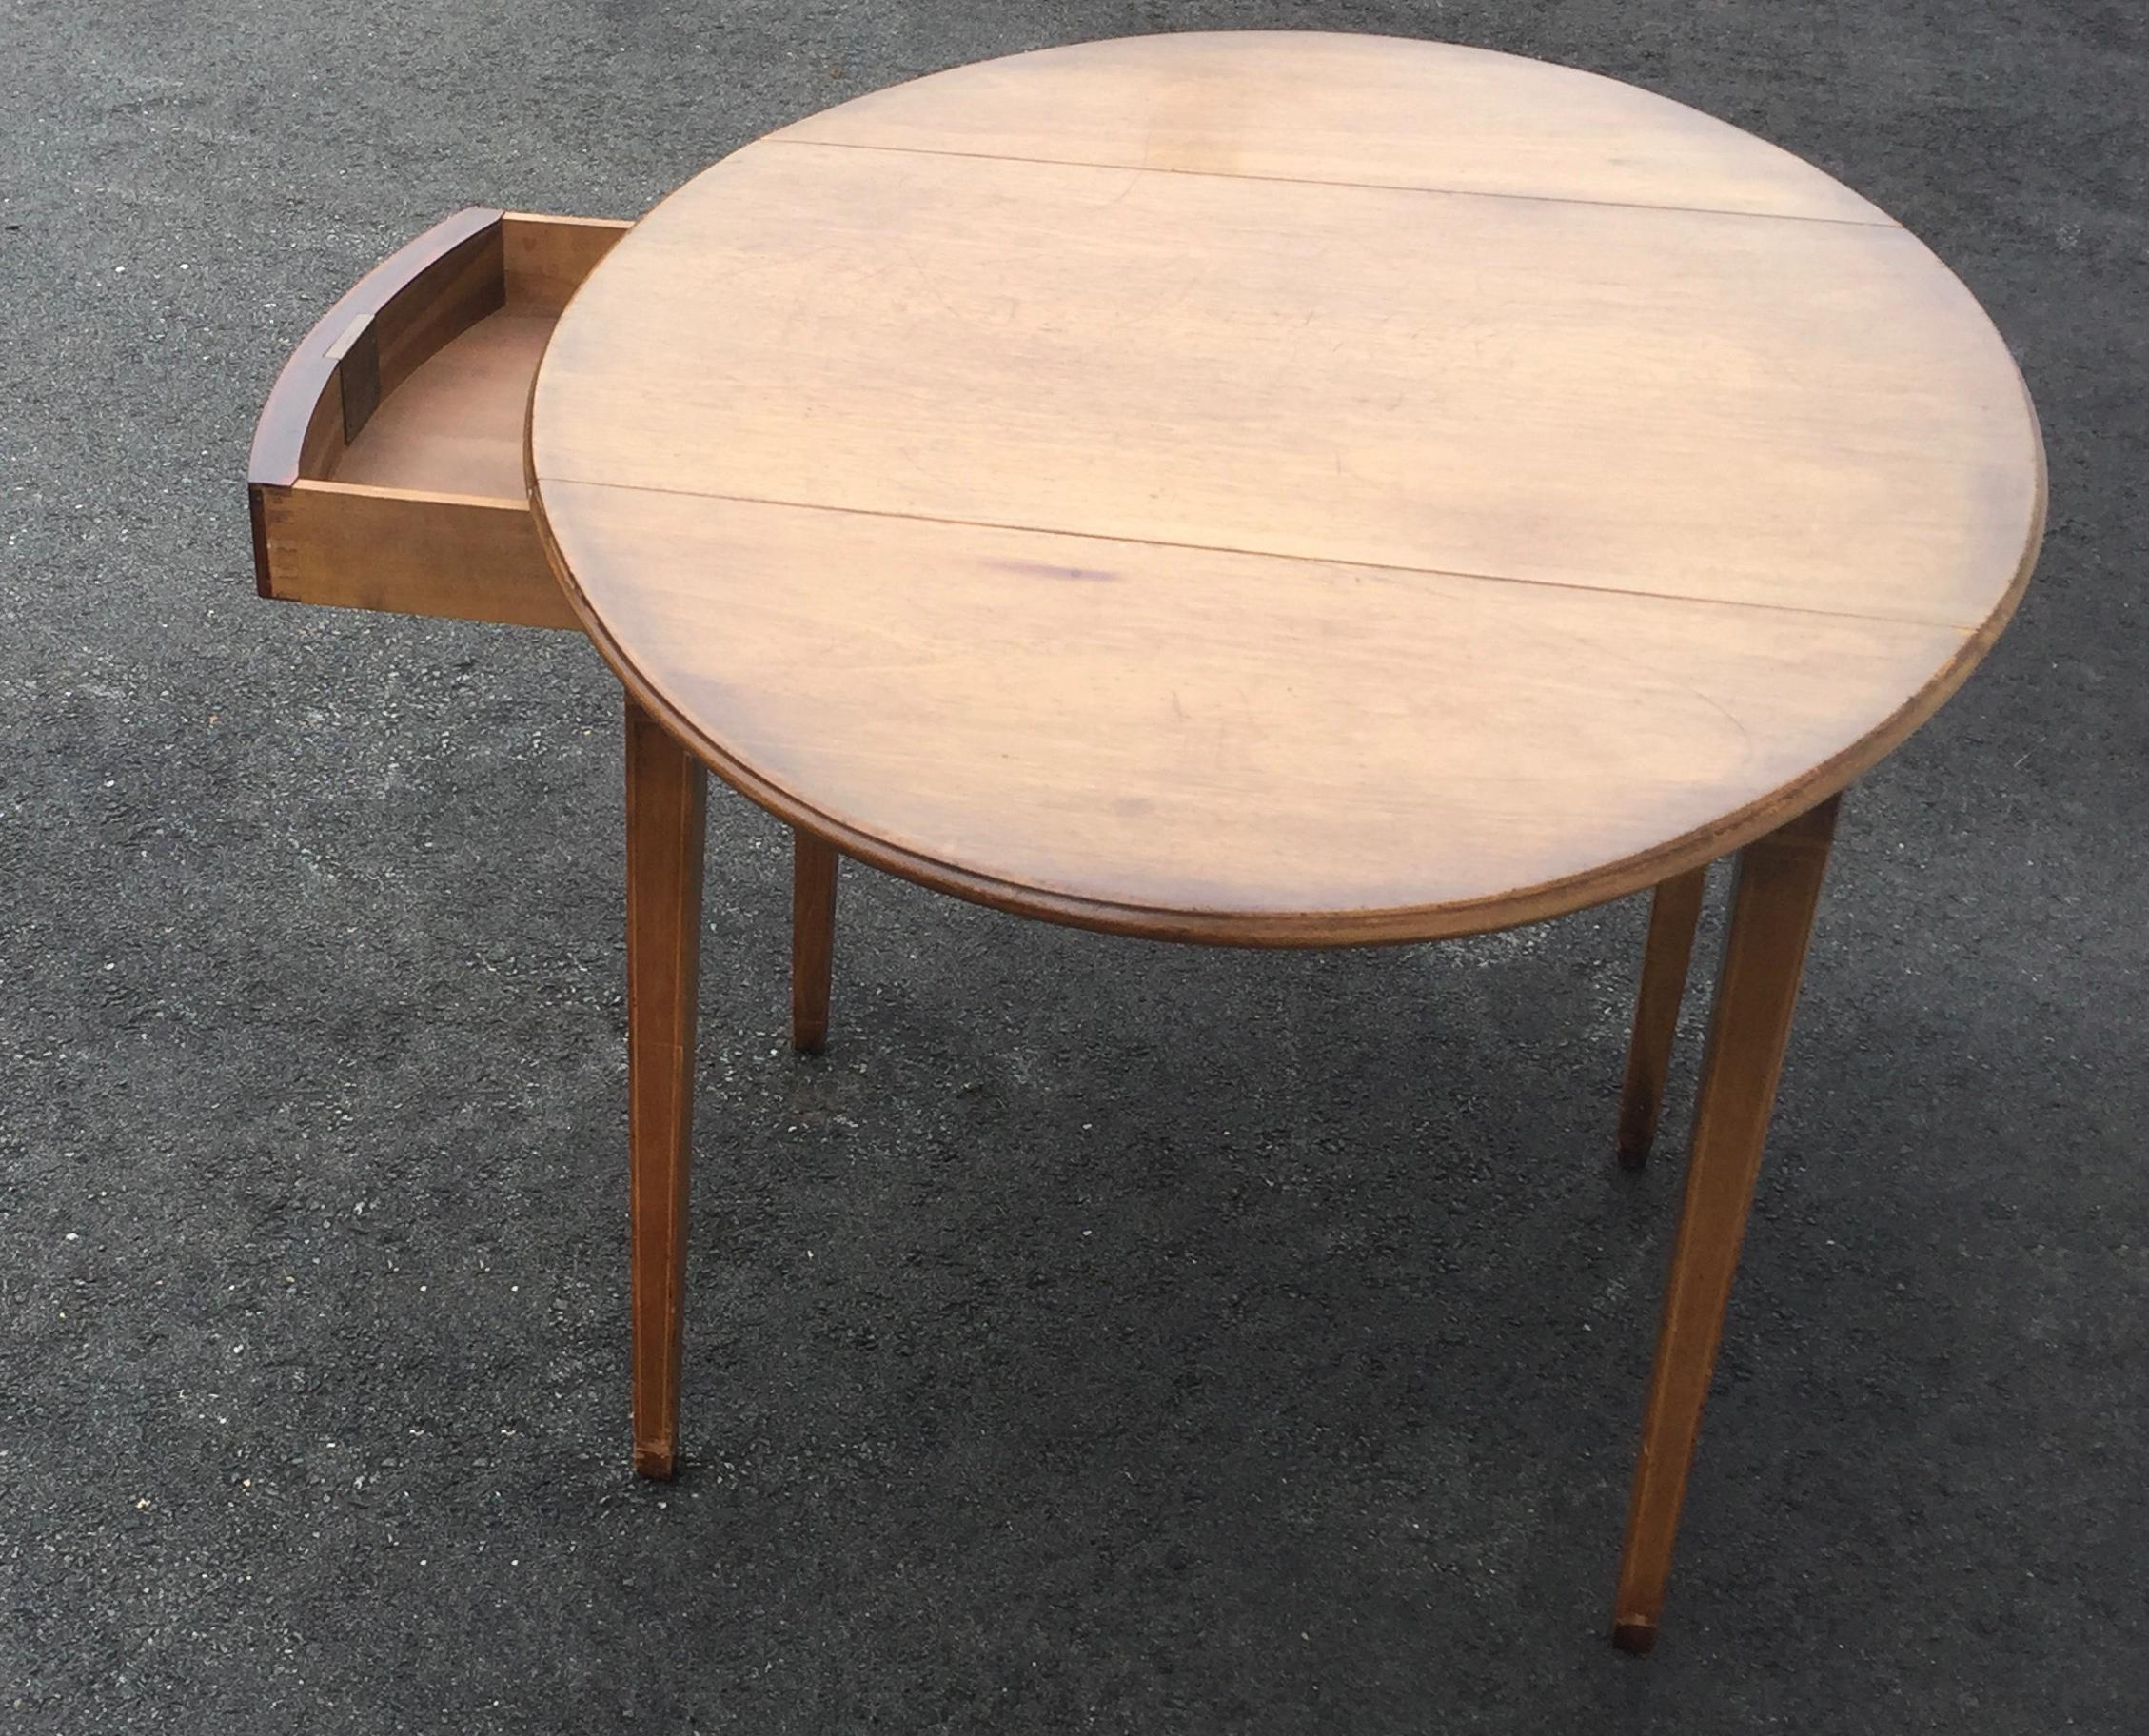 Kittinger Antique Drop Leaf Side Table Dining Table Chairish